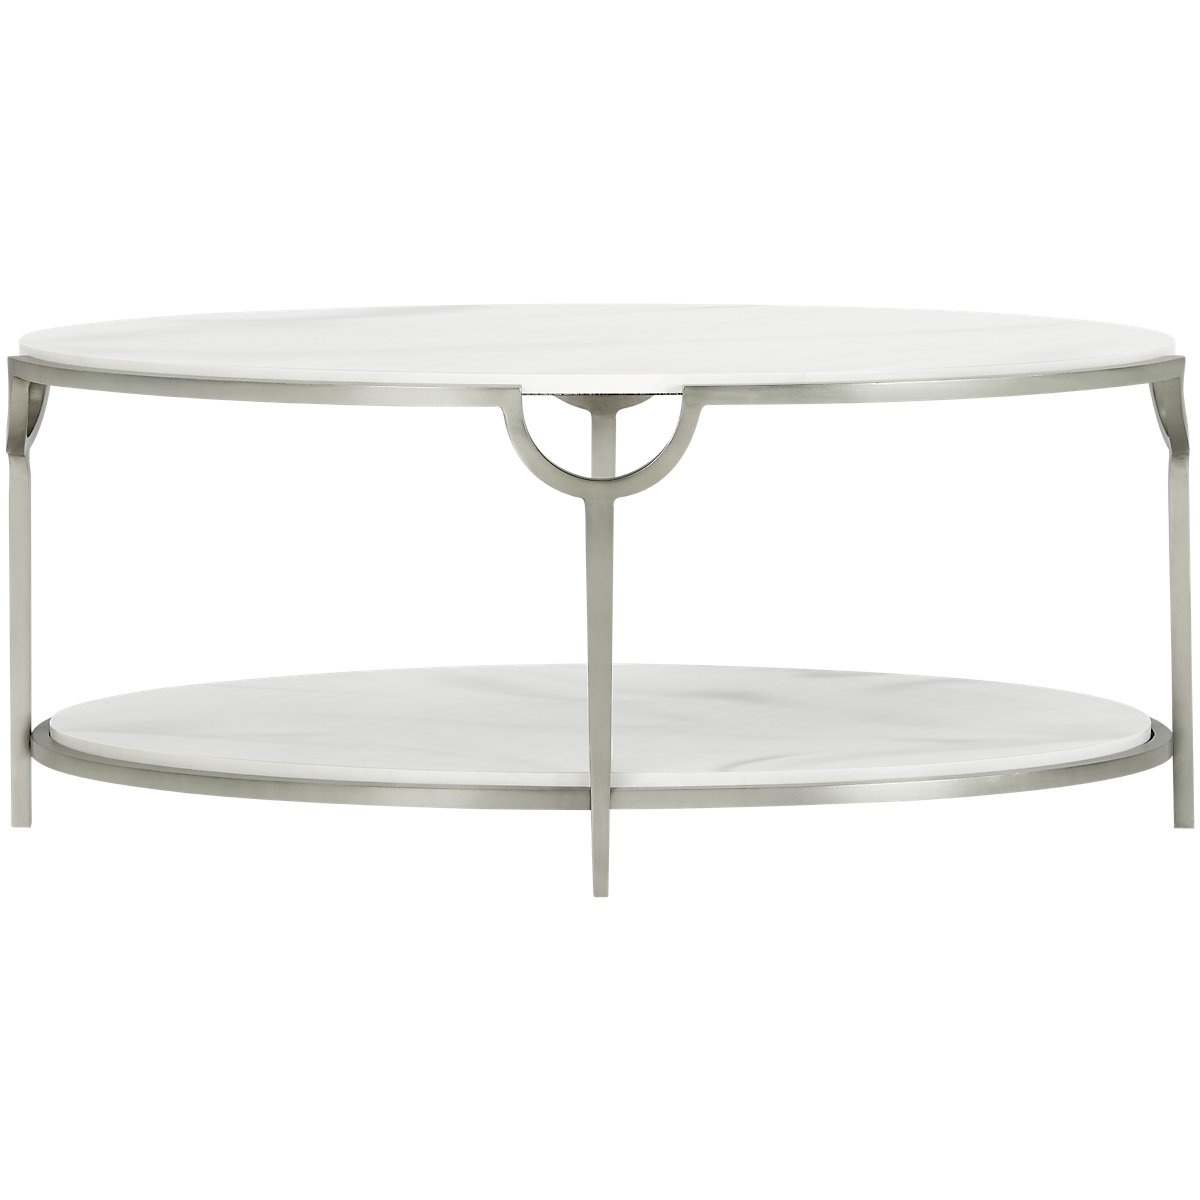 Oval Coffee Table Marble: Morello Marble Oval Coffee Table